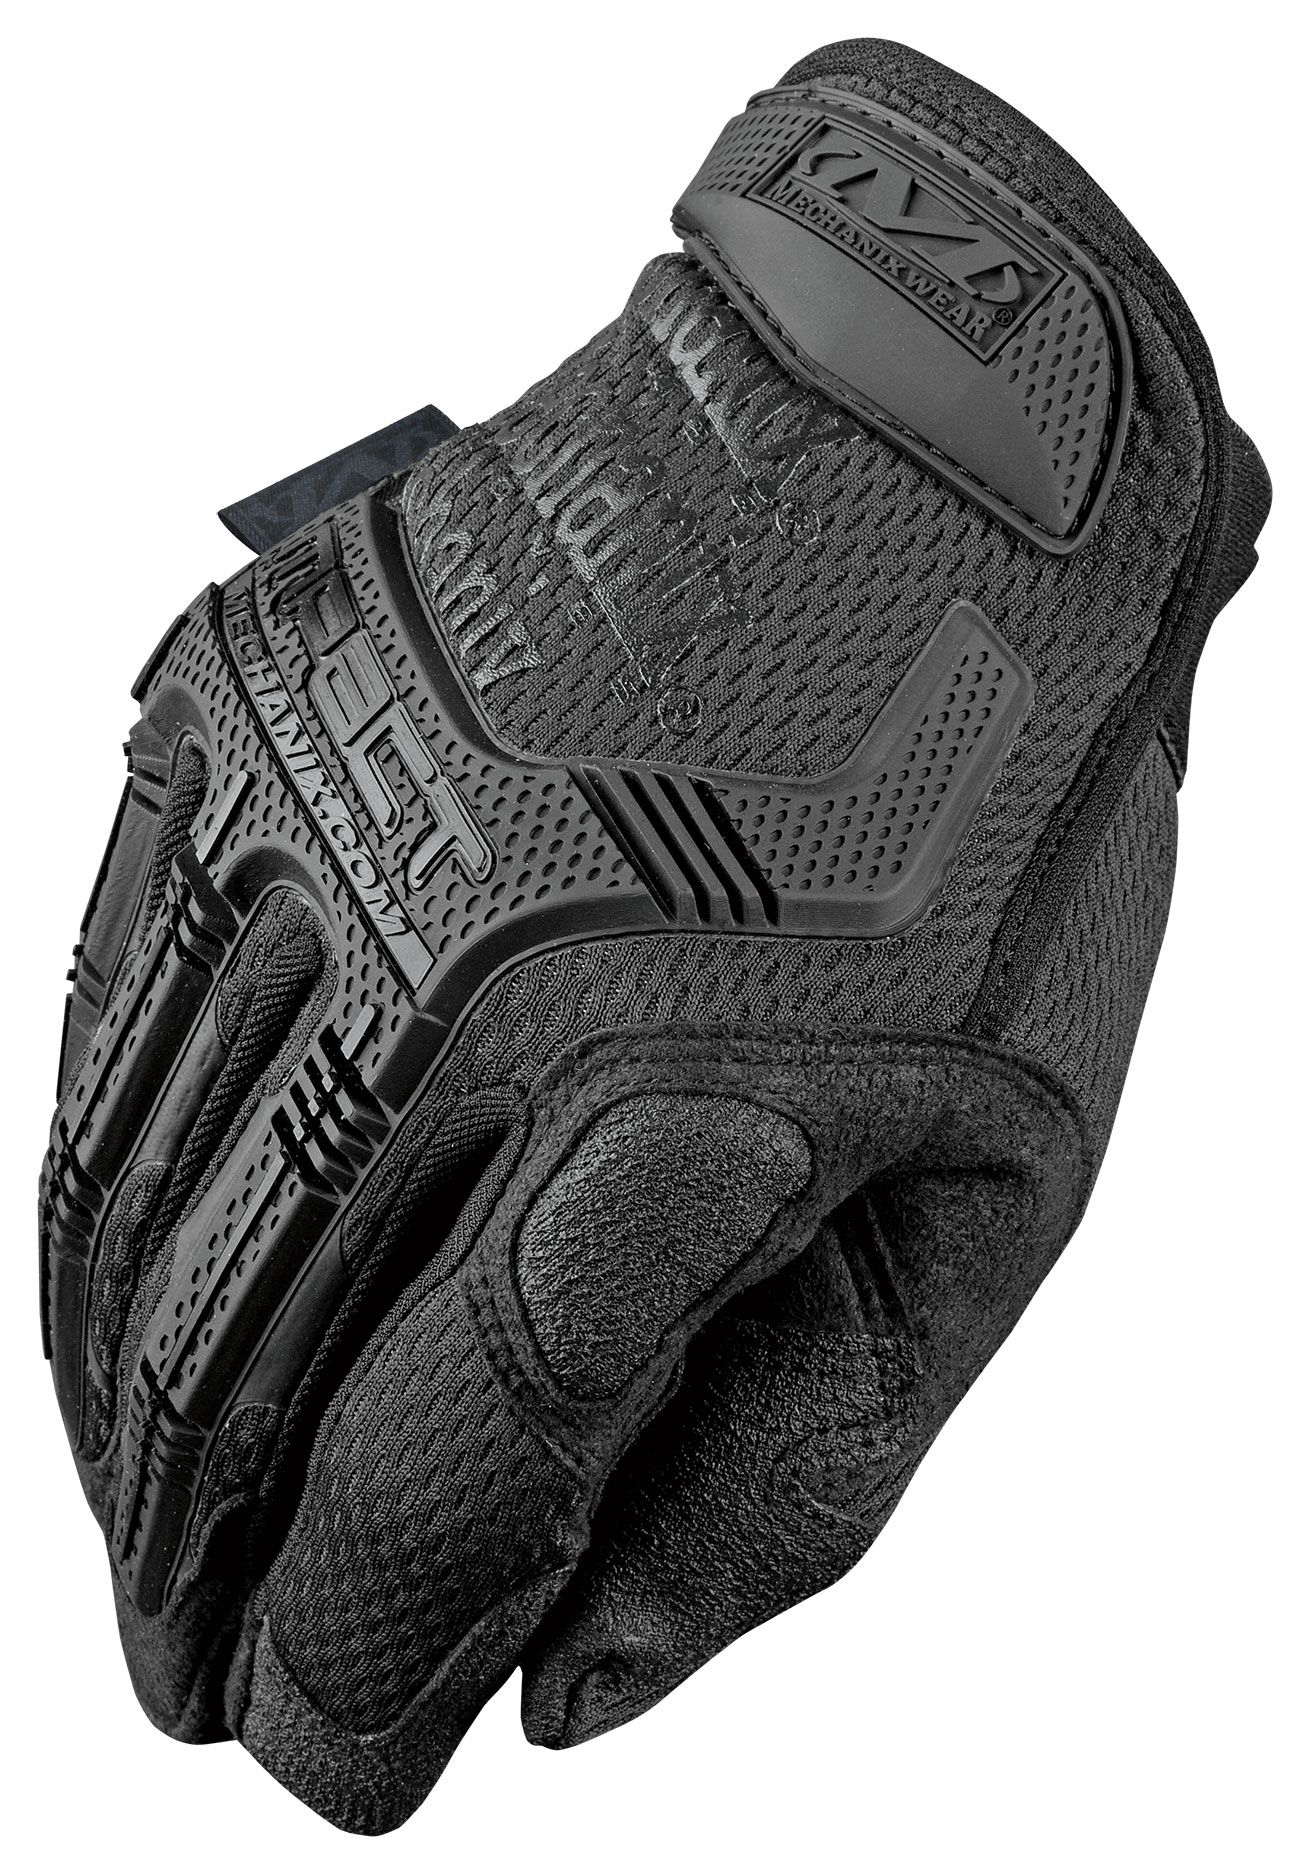 Mechanix Wear MPact Tactical Gloves Tactical gloves